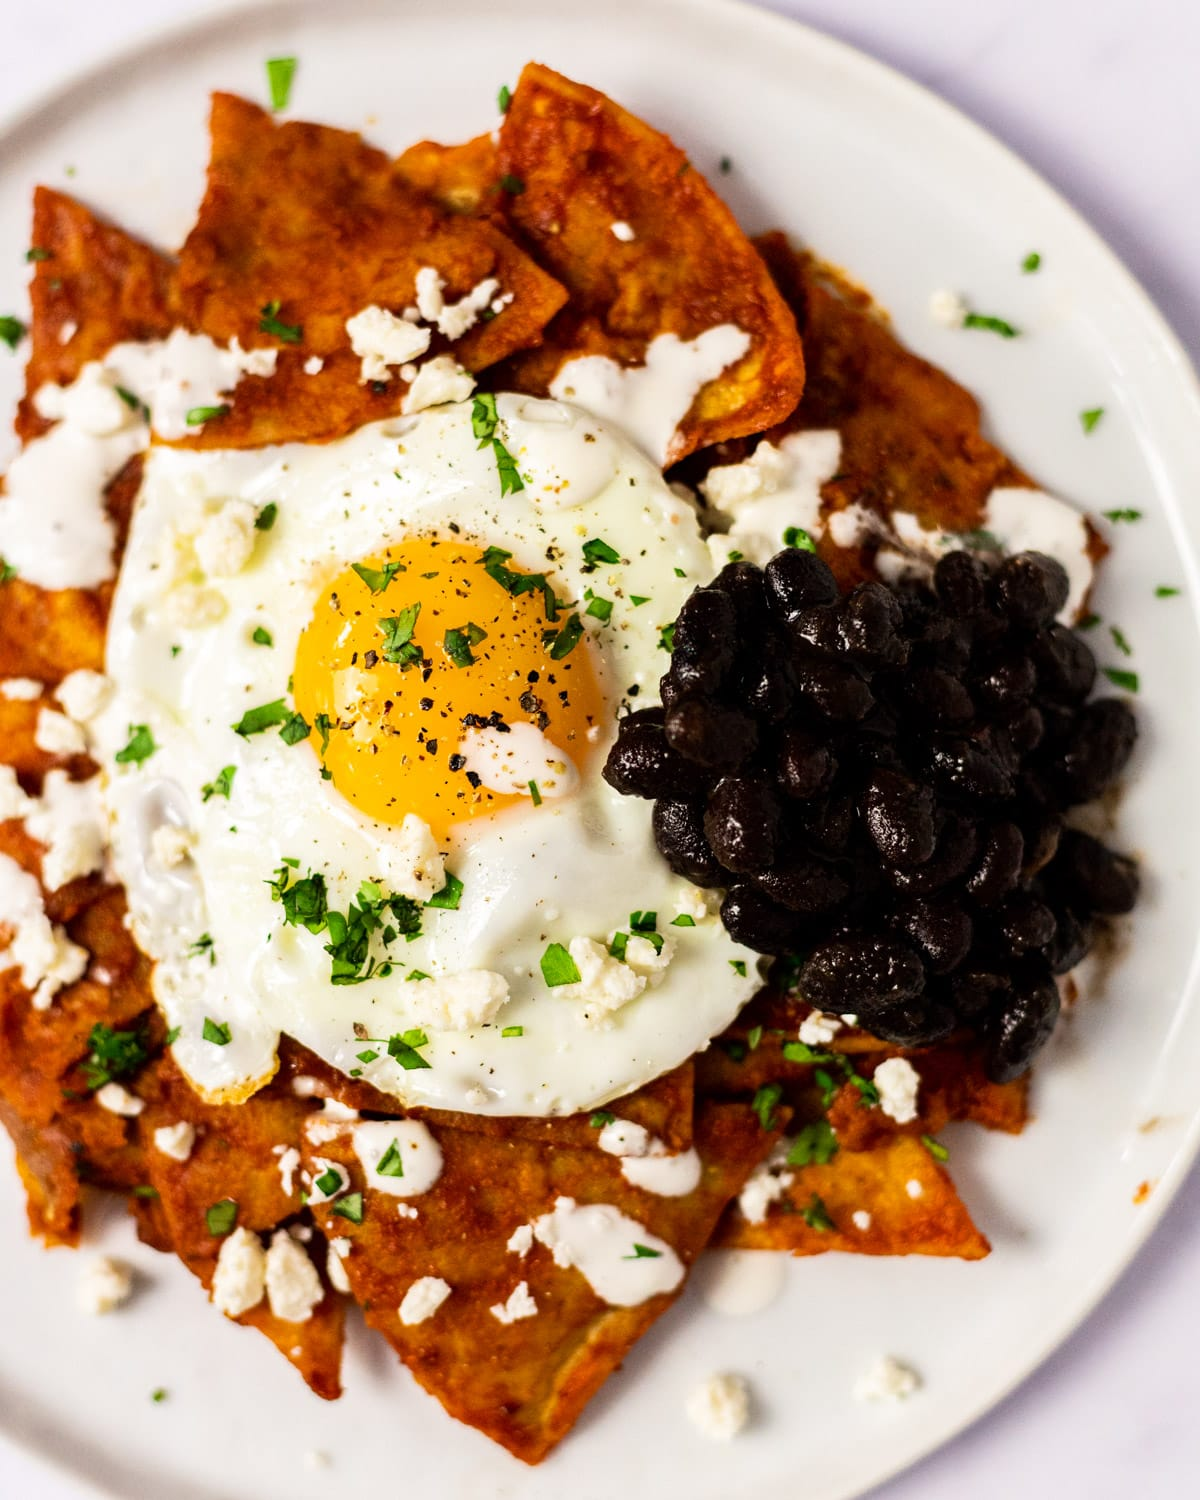 A close up view of a plate of red chilaquiles served with a side of Mexican black beans.